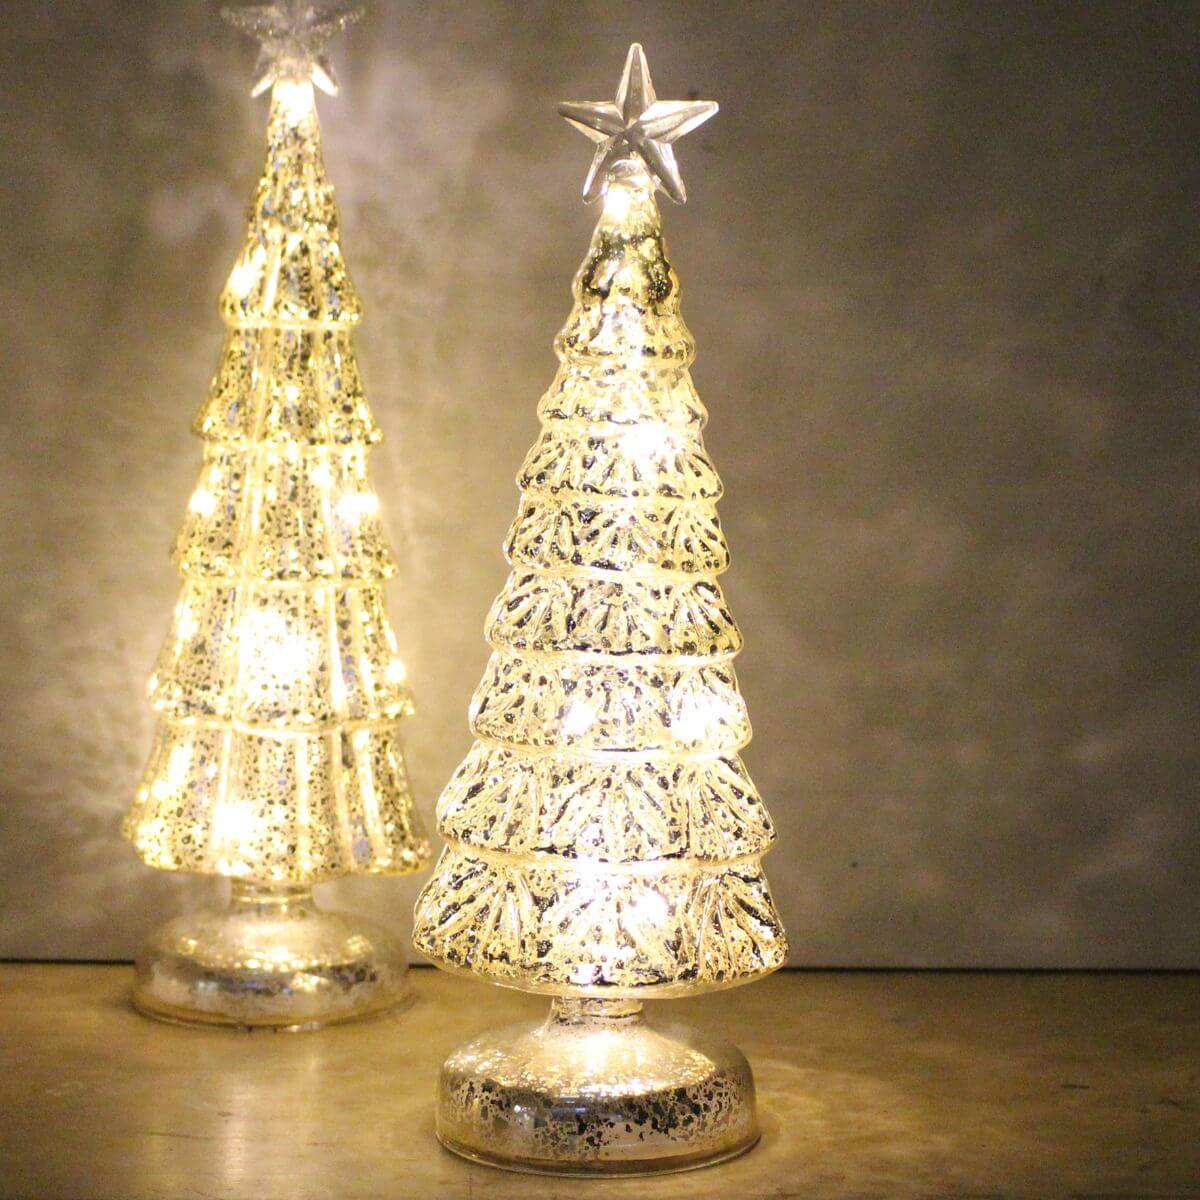 Twinkle Light Decoration Ideas for Christmas